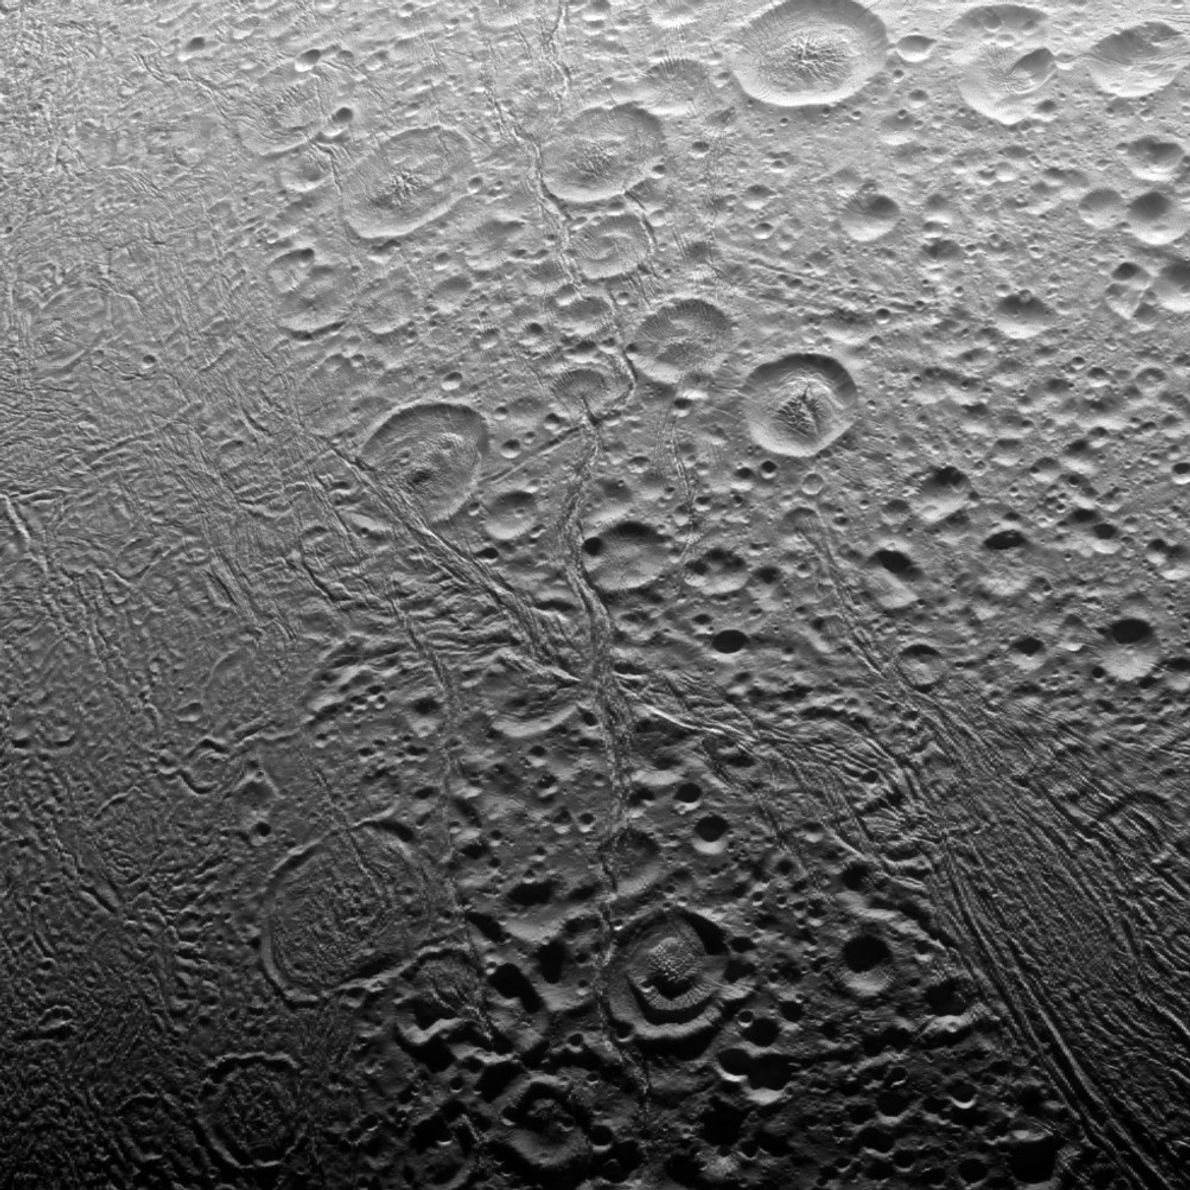 Cassini revealed that the north polar area of Enceladus is heavily cratered, an indication that the ...